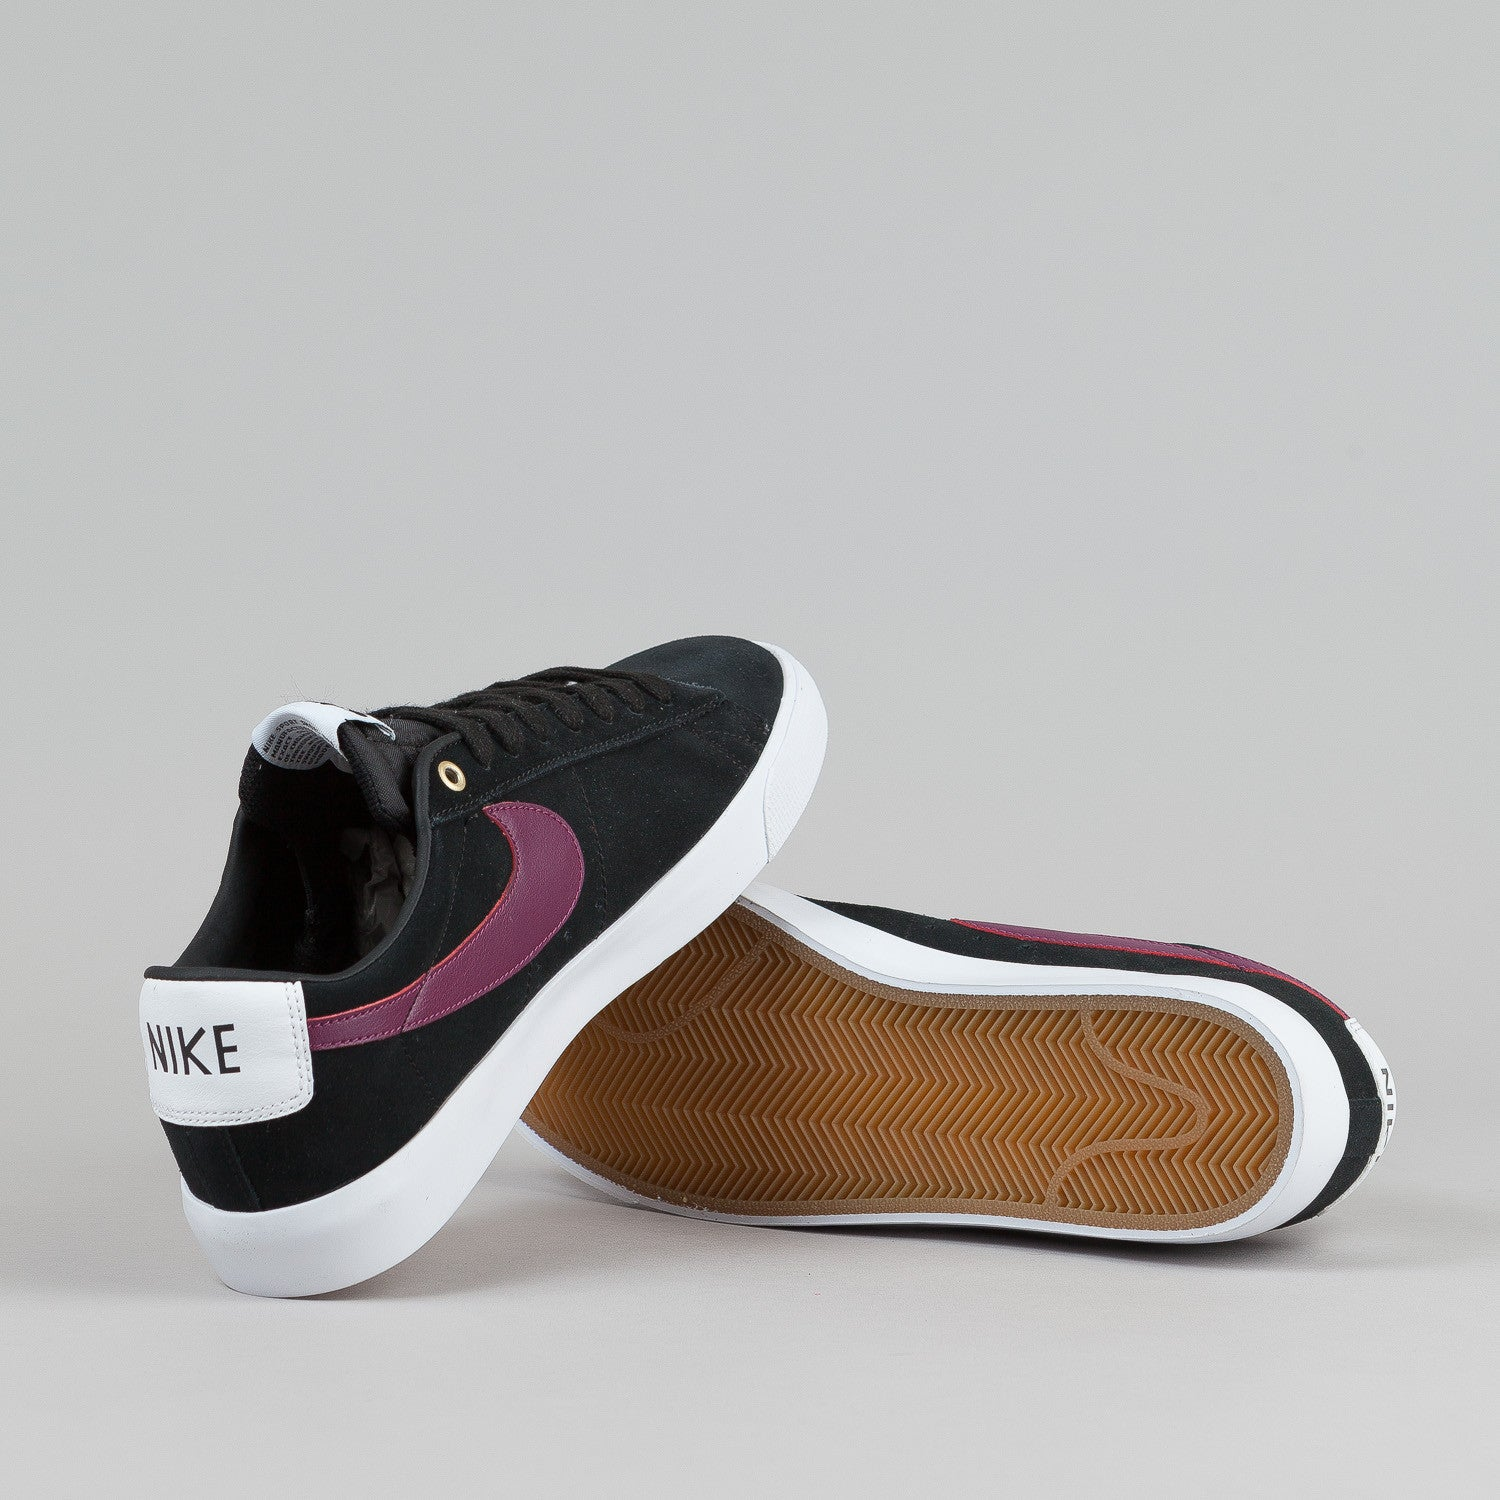 Nike SB Blazer Low GT Shoes Black / Villain Red - Gum Light Brown - White